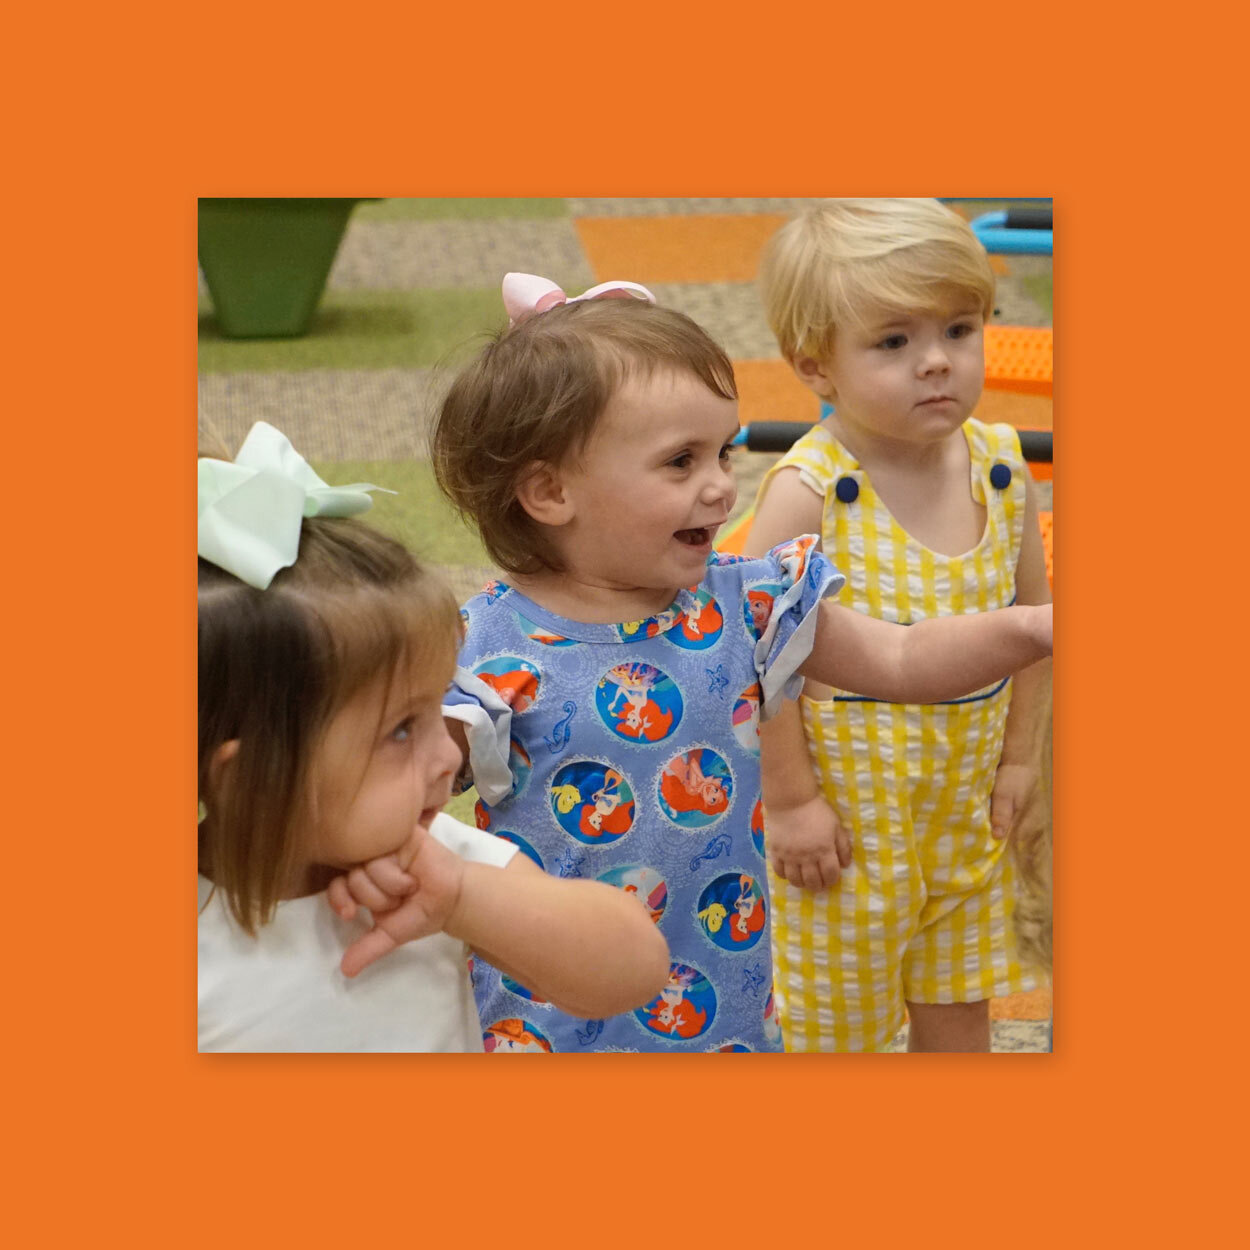 Toddler - 2 - 3 YRSDC Kids Toddler is a place to discover who God is through age appropriate Bible stories, activities, worship, and prayer. As our team ministers to your child, we pray for them to experience God and make a difference throughout their life.